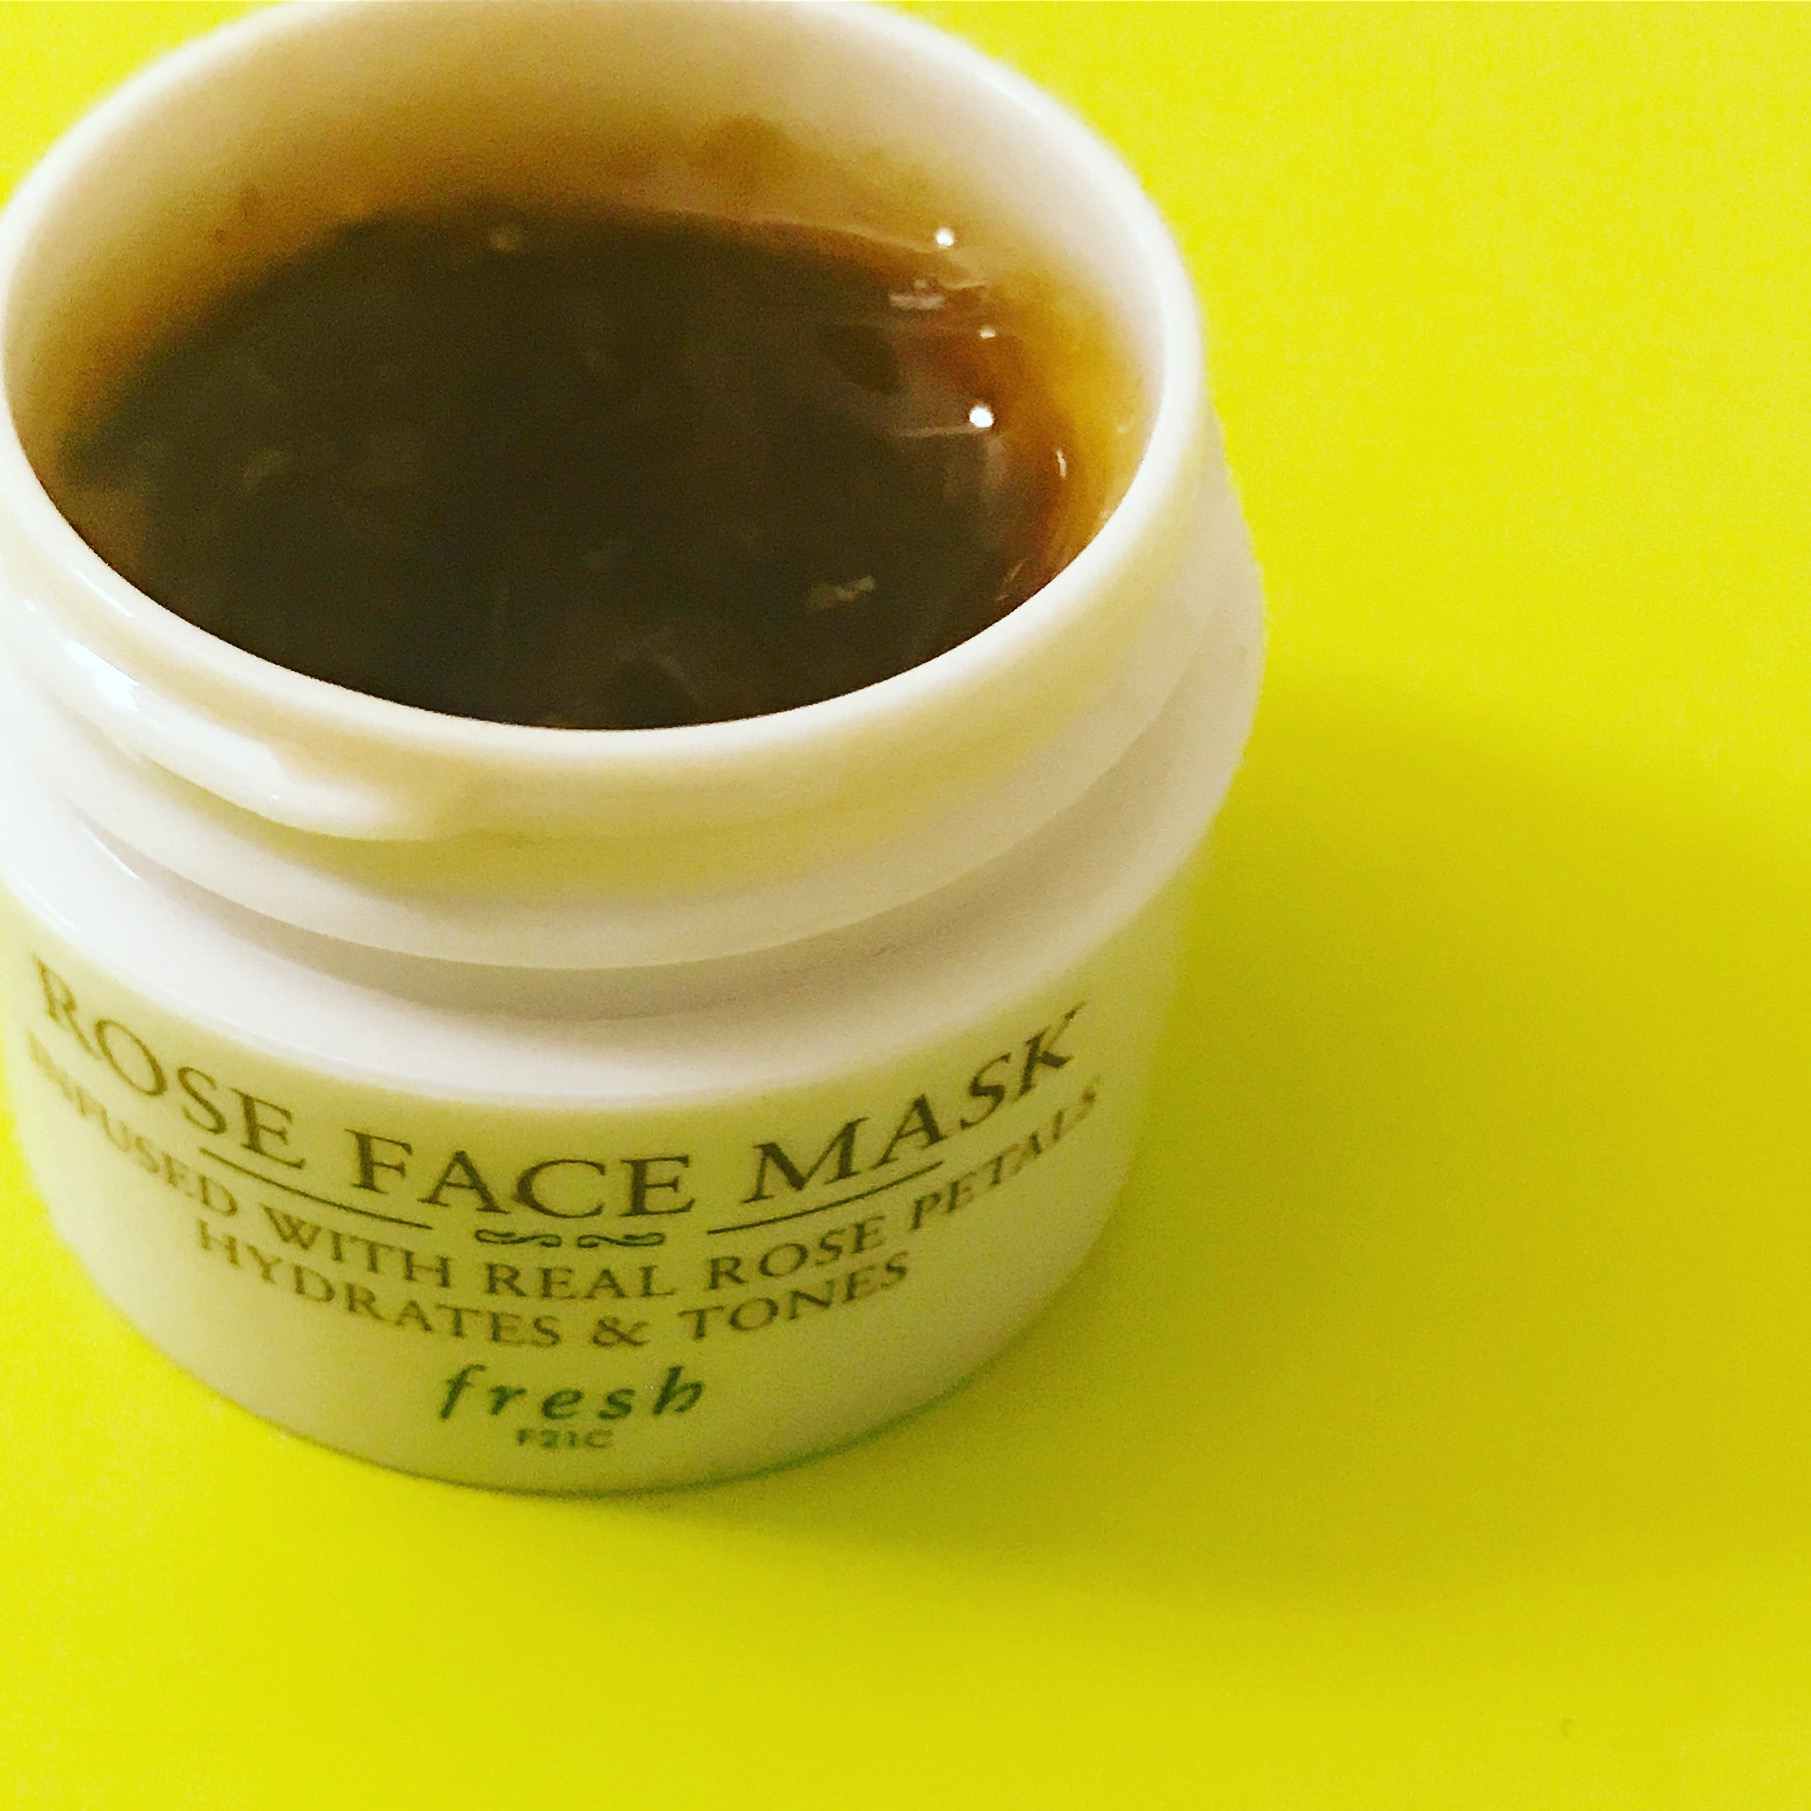 Fresh Rose Face Mask - It smells like a bed of roses and has real rose petals!